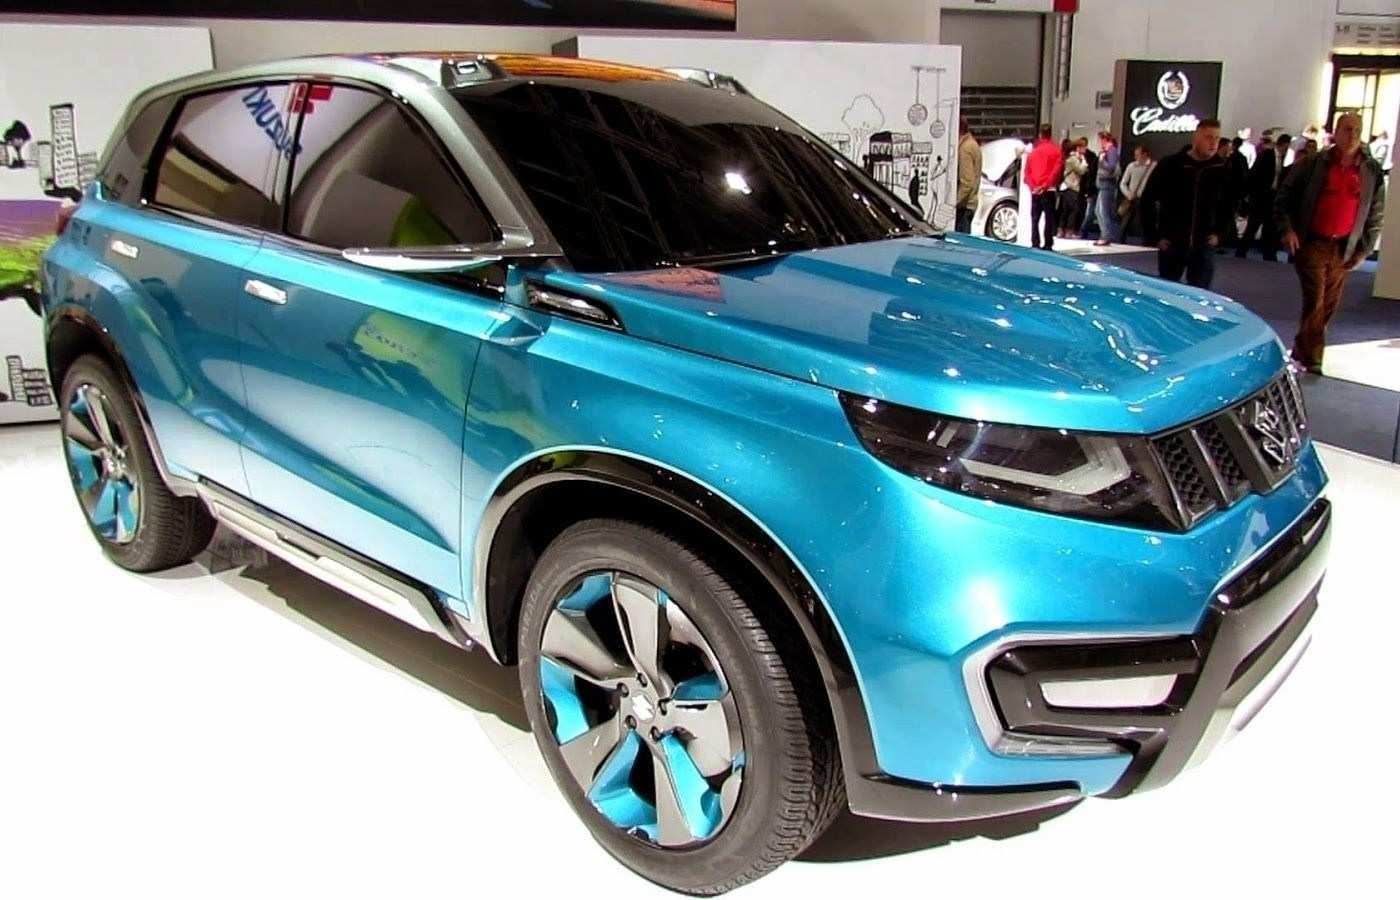 68 Best 2019 Suzuki Grand Vitara Configurations